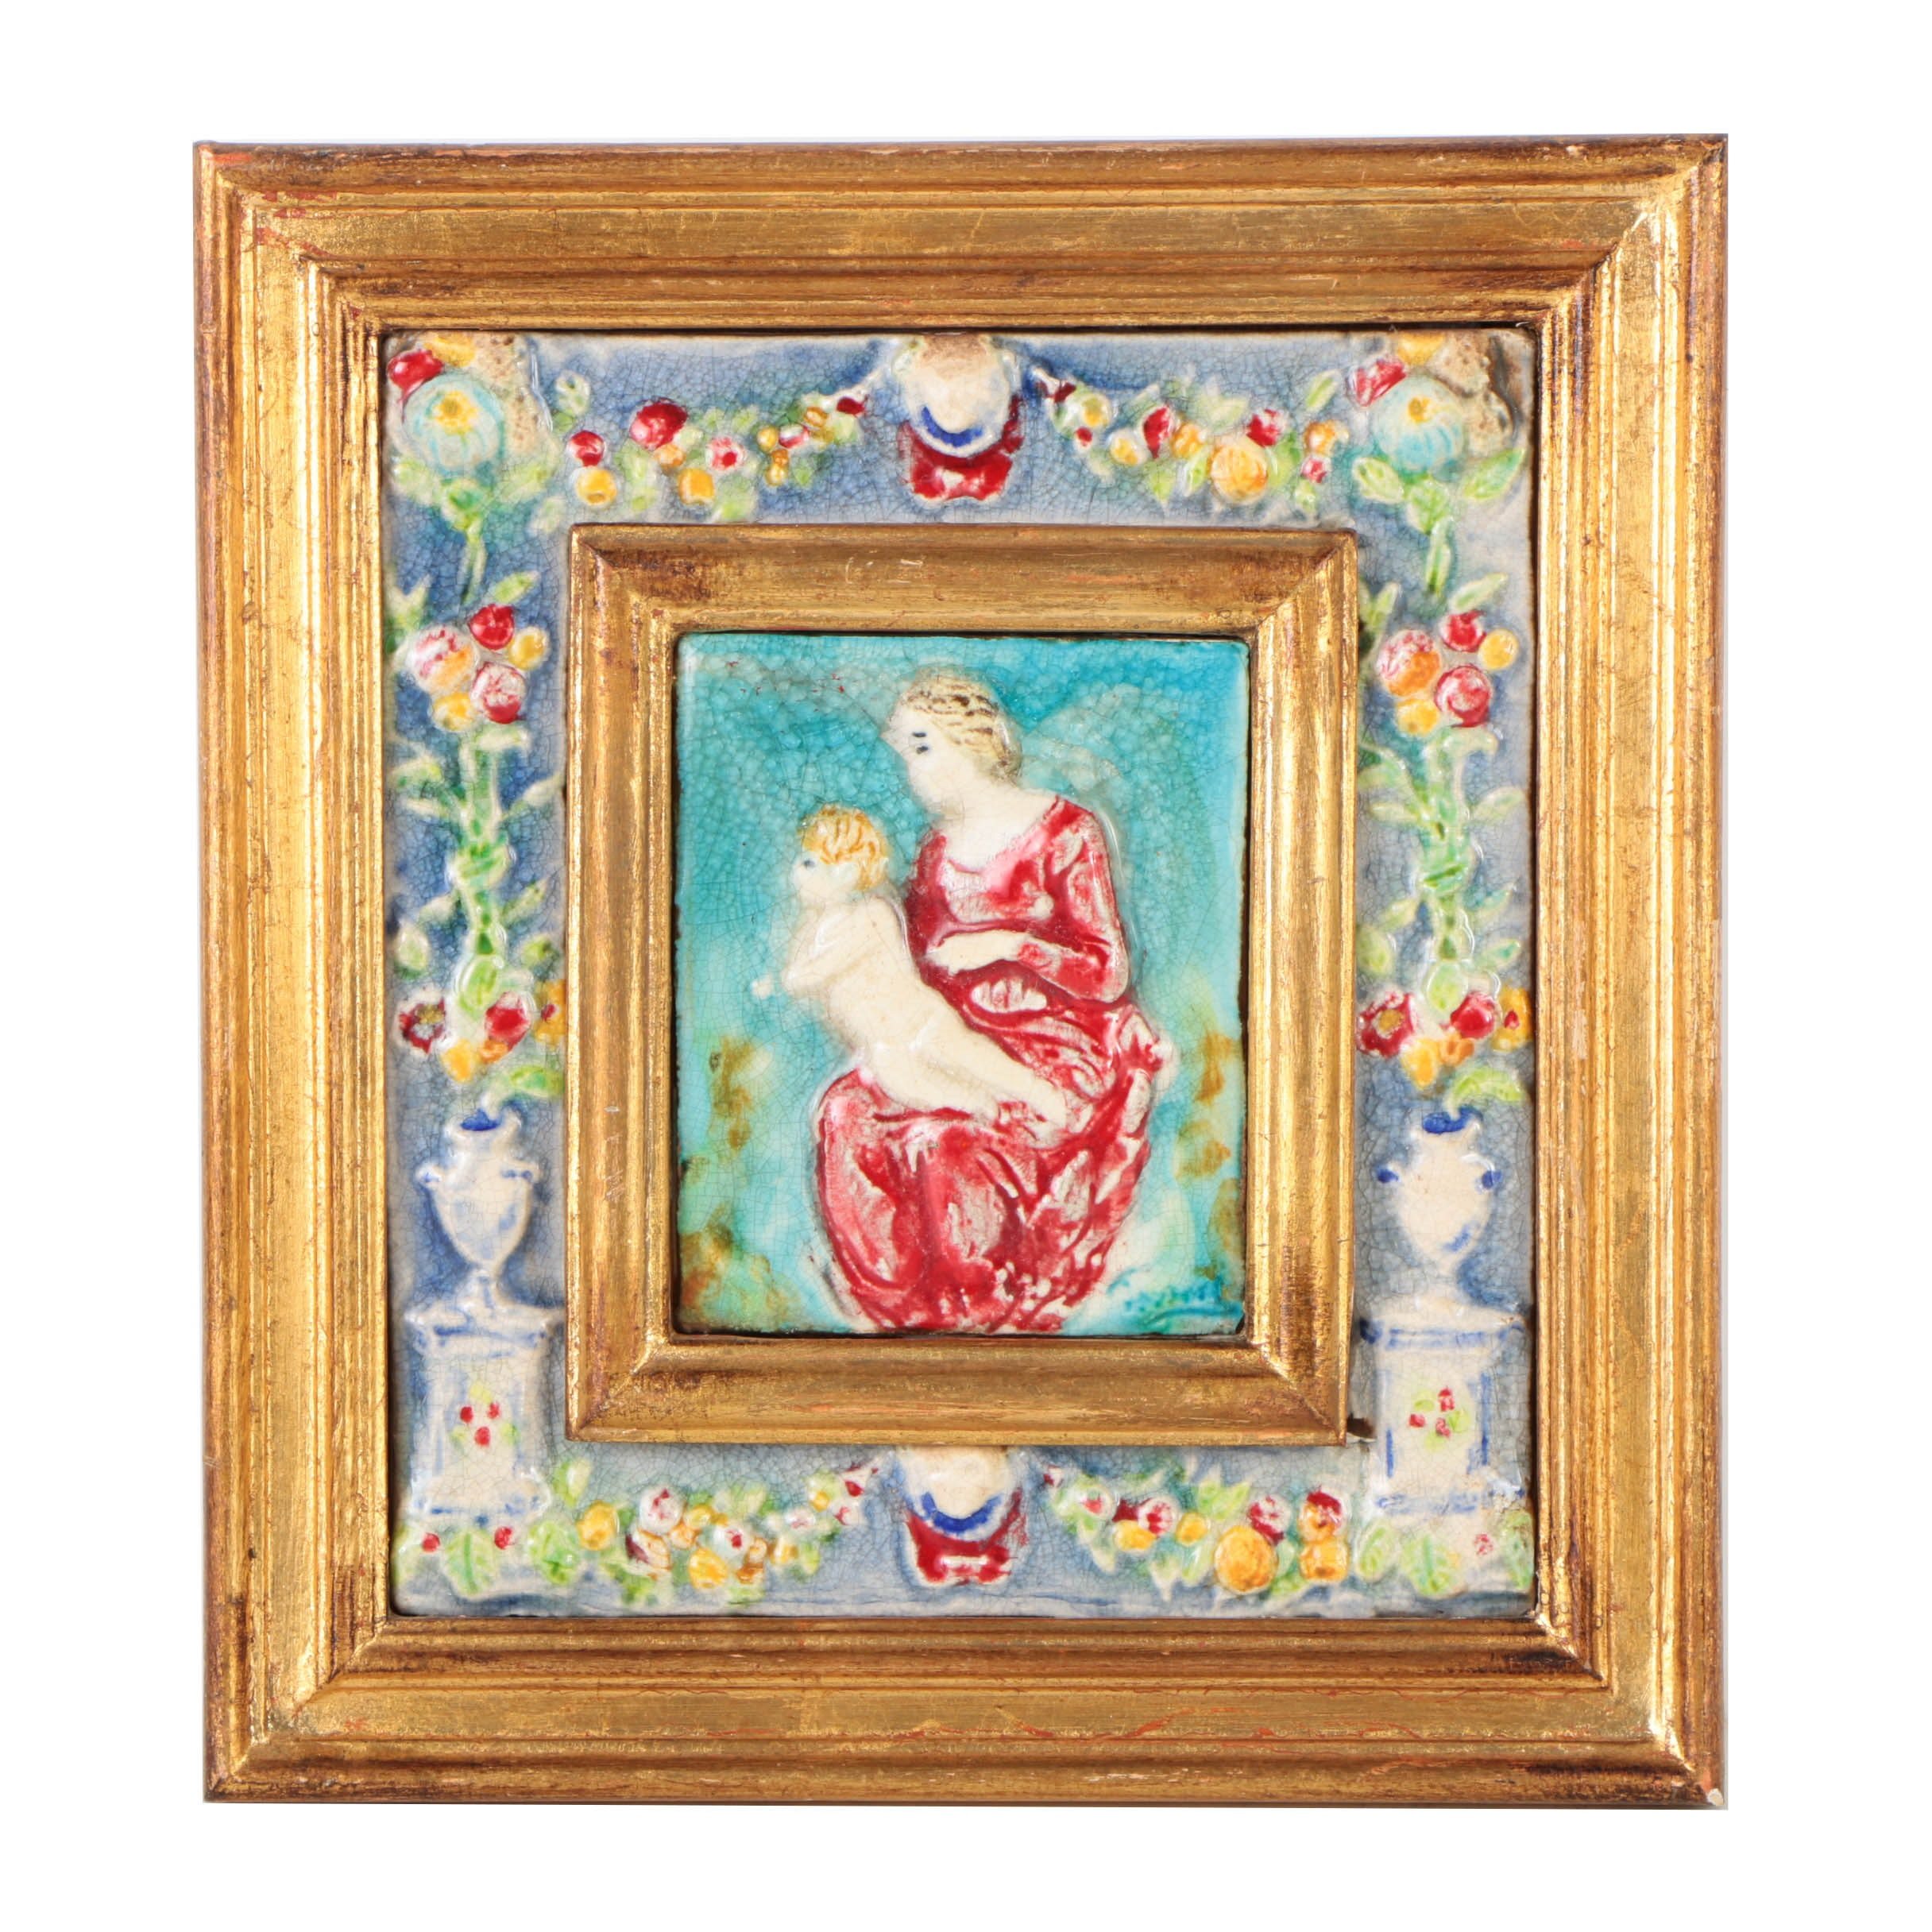 Hand-Painted Framed Italian Ceramic Tile of a Woman and Child